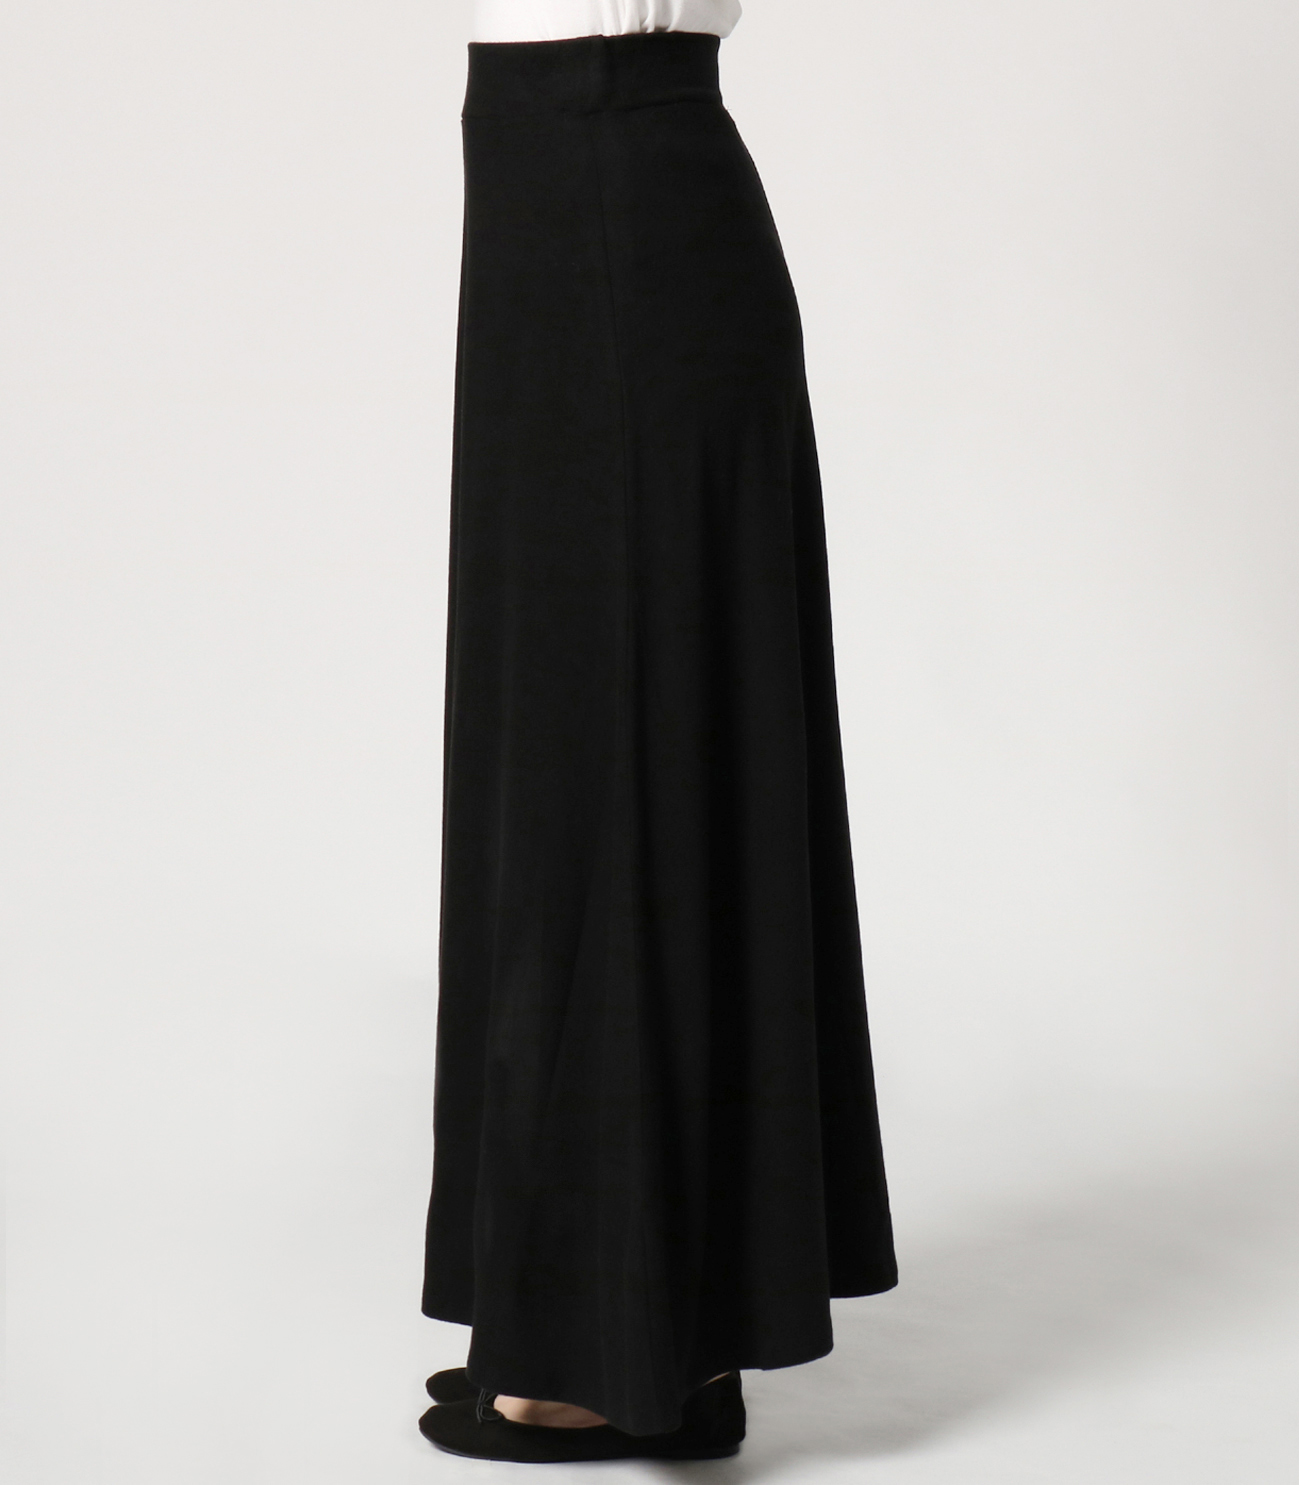 brushed sweater long skirt 詳細画像 black 3